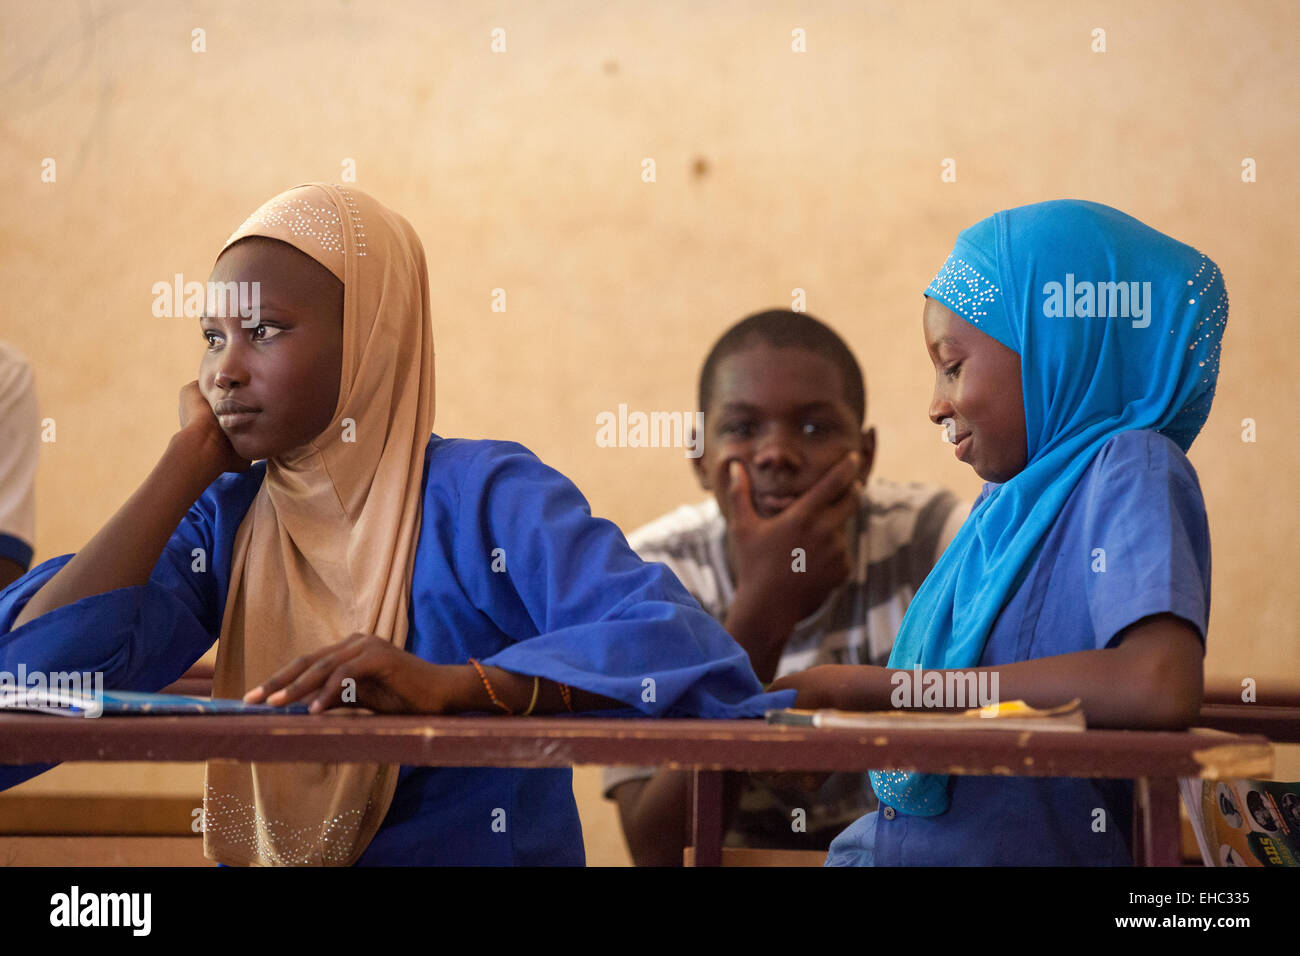 Members of the 'Our Future' children's club at the Secondary School, Tera, west Niger. - Stock Image